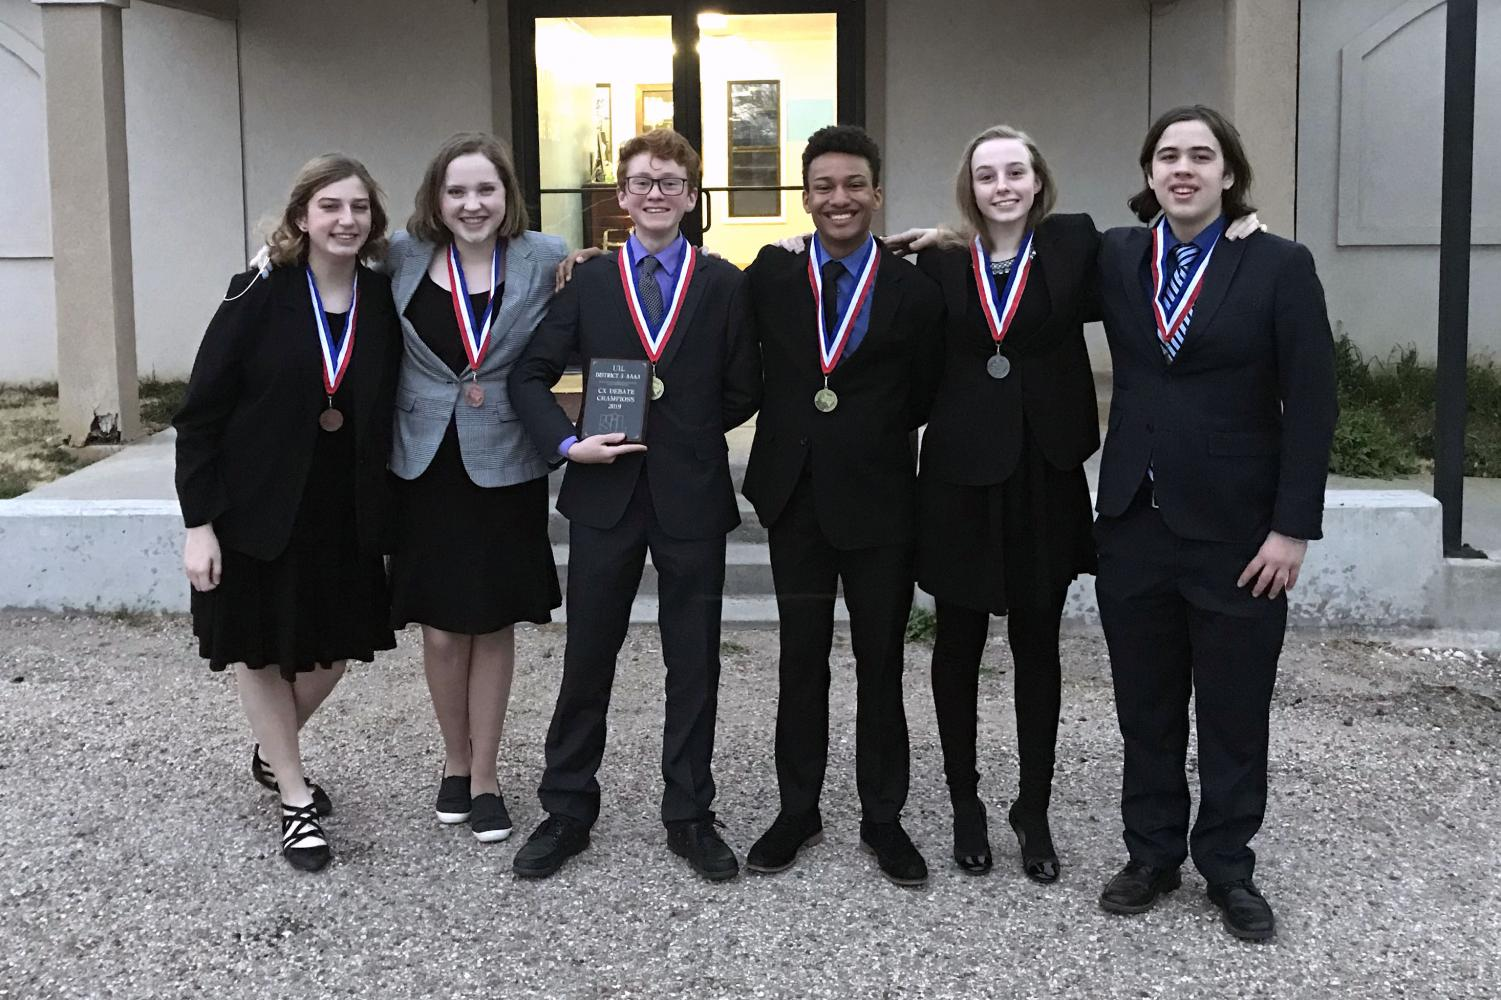 The three state-qualifying cross-examination teams celebrate their new medals.